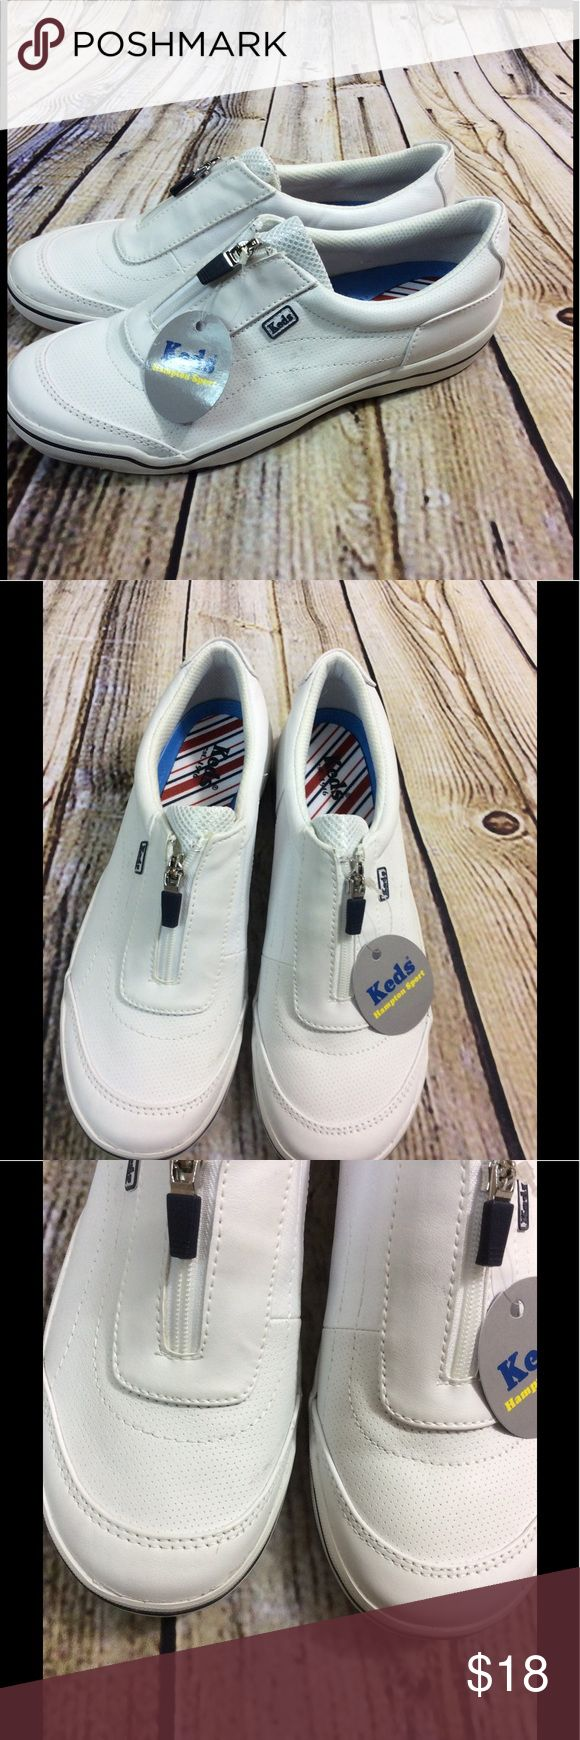 Women's Zip Up Keds 7.5 NWT Women's keds new with tags size 7.5. A few scuffs from storage one by toe, one by keds sign and some silver marker from pricing on sole. So new but a few imperfections. Keds Shoes Flats & Loafers